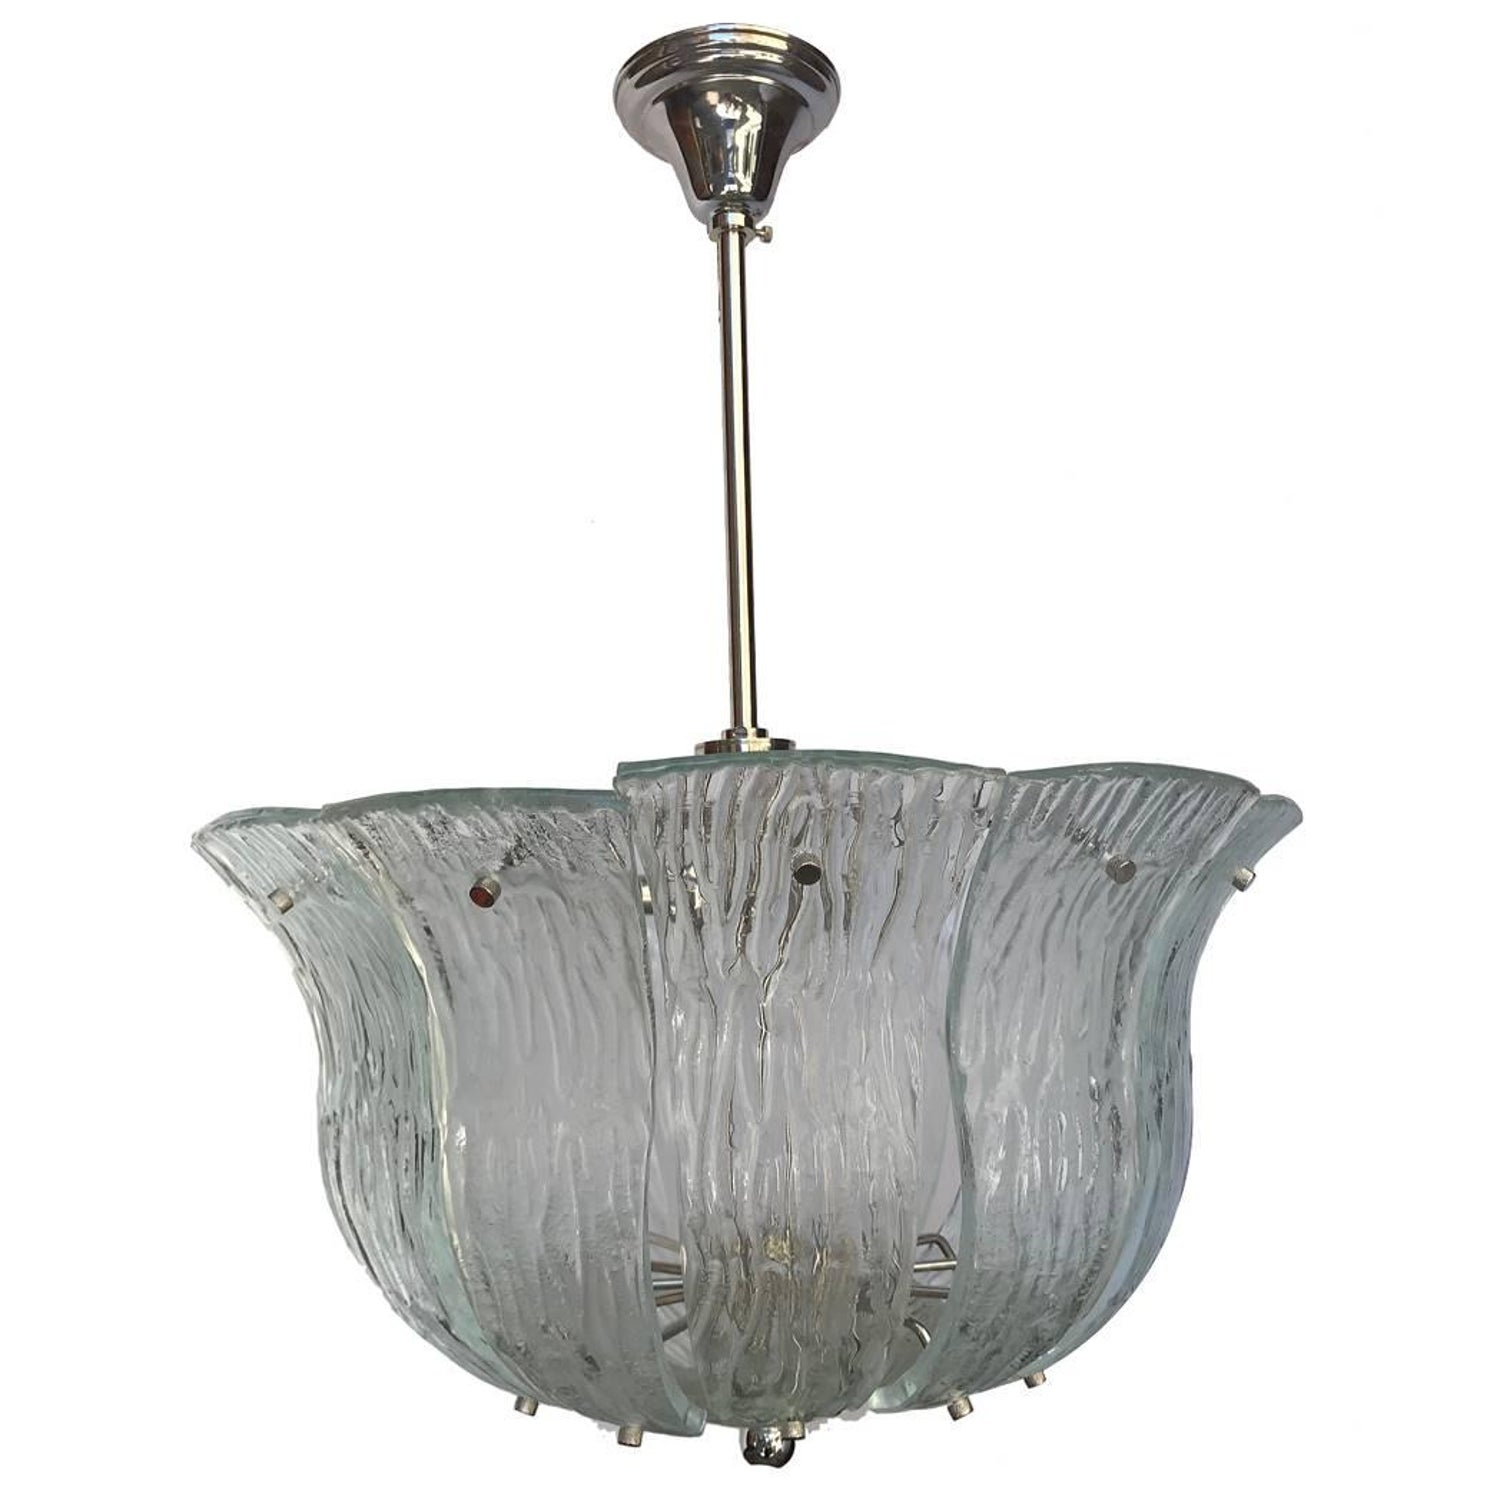 Pair of moderne french molded glass light fixtures for sale at 1stdibs